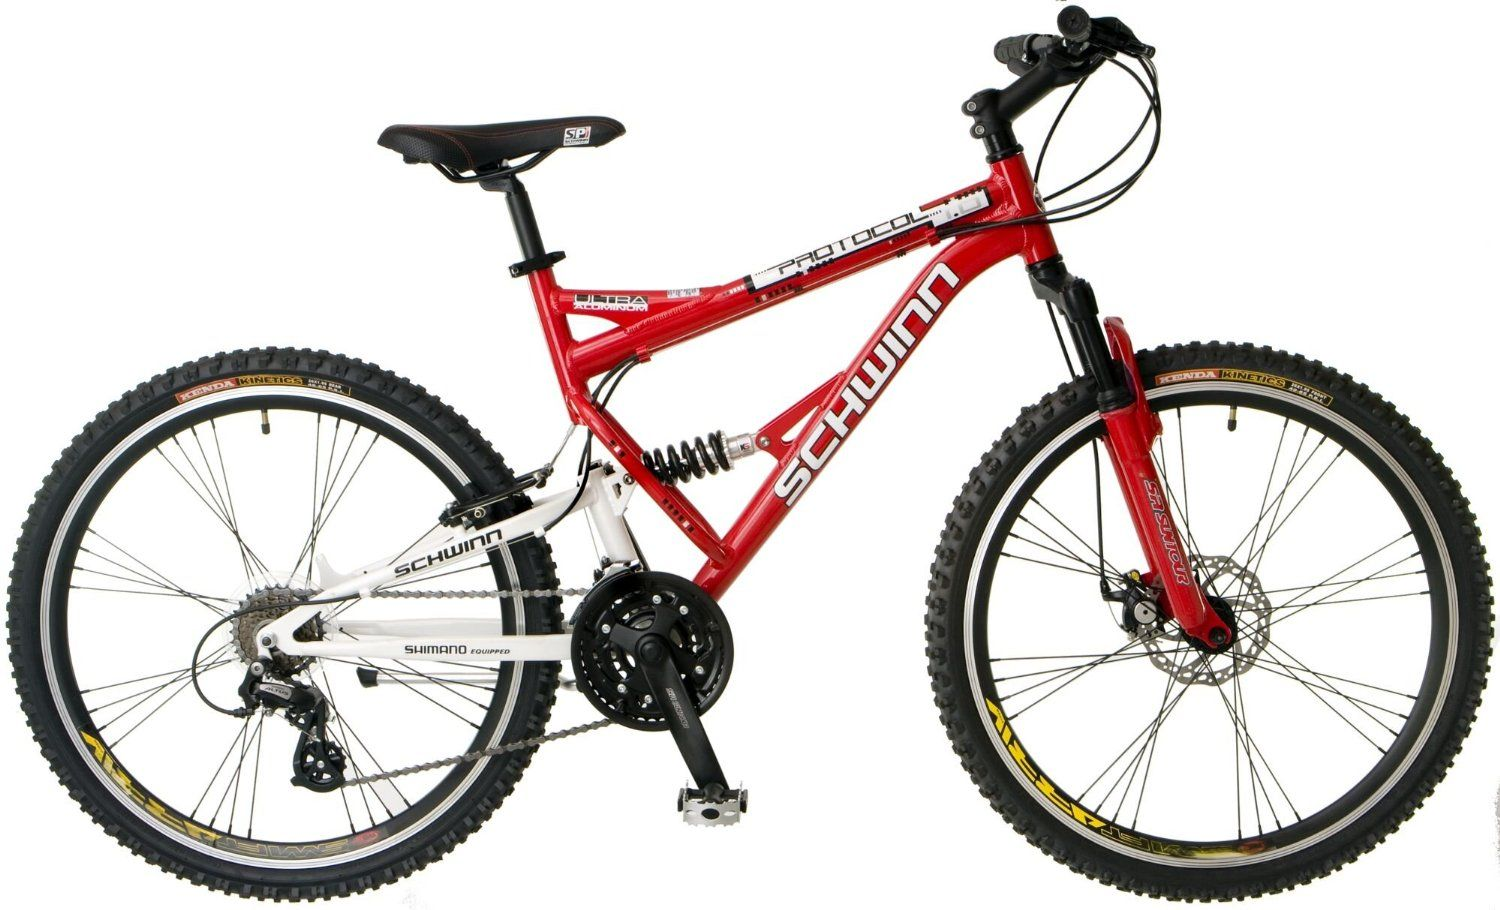 Top 10 Best Cheap Mountain Bikes In 2019 Reviews Full Suspension